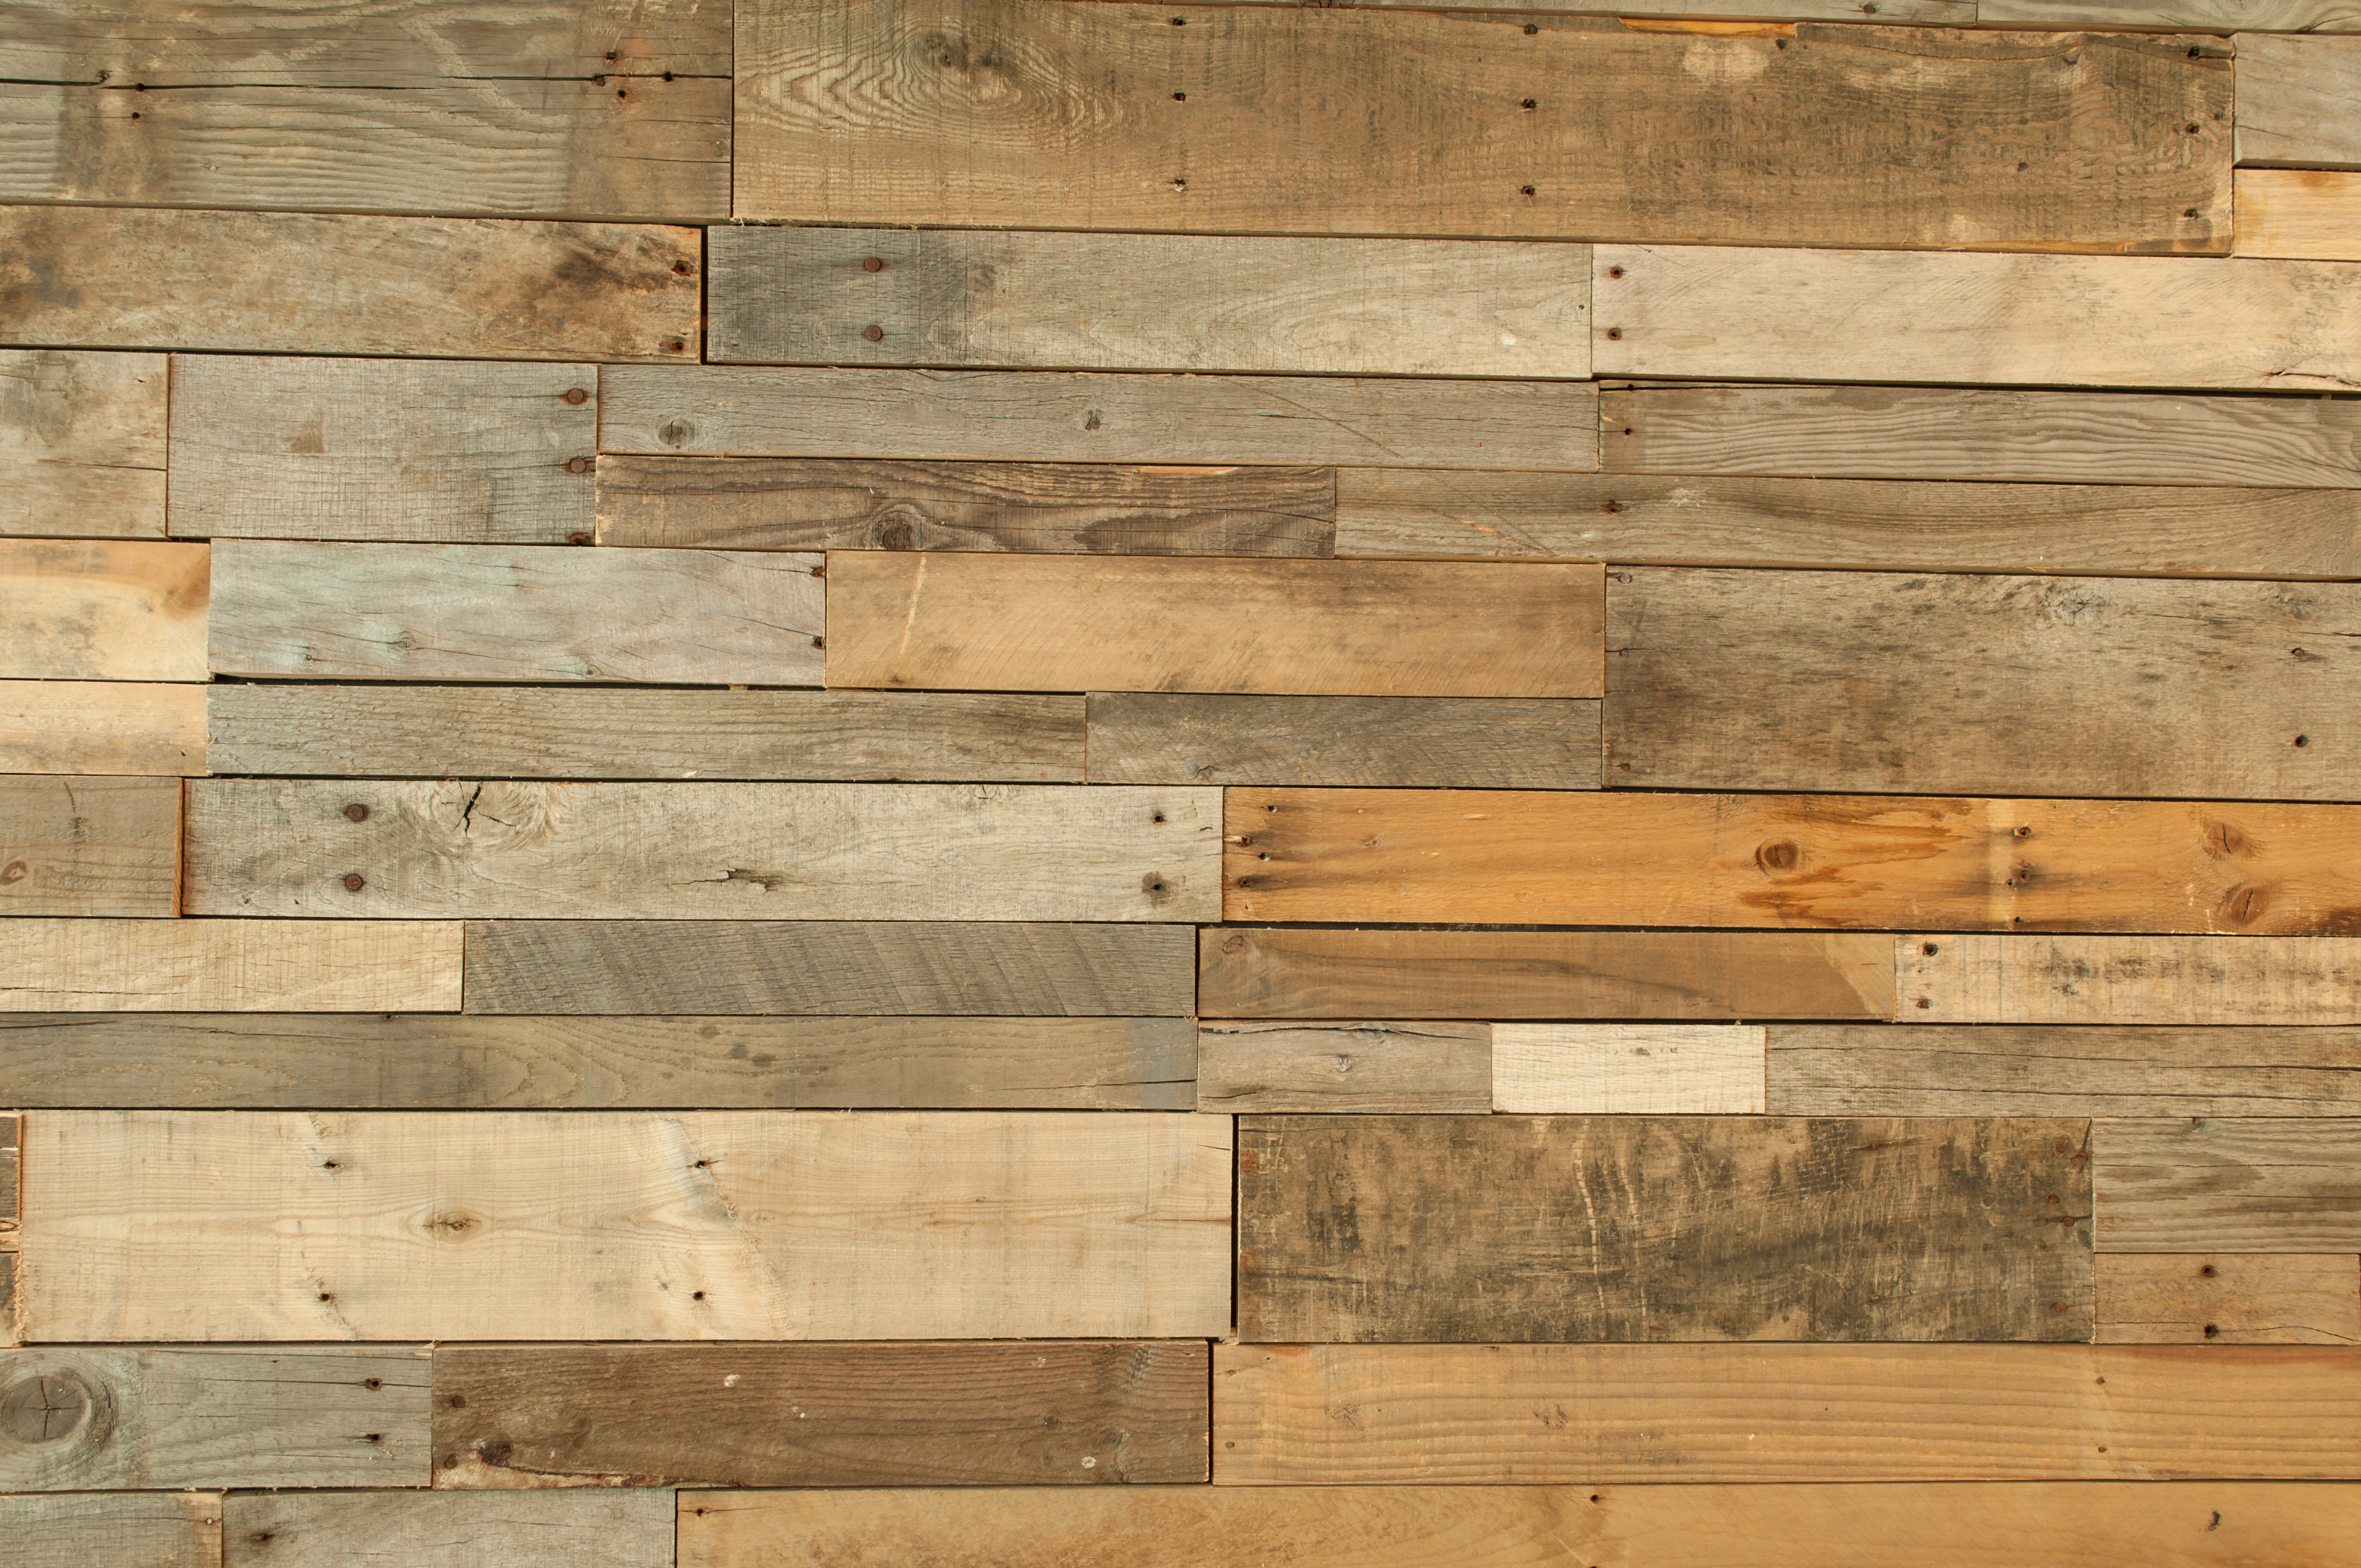 Reclaimed wood wall paneling Sustainable Lumber pany